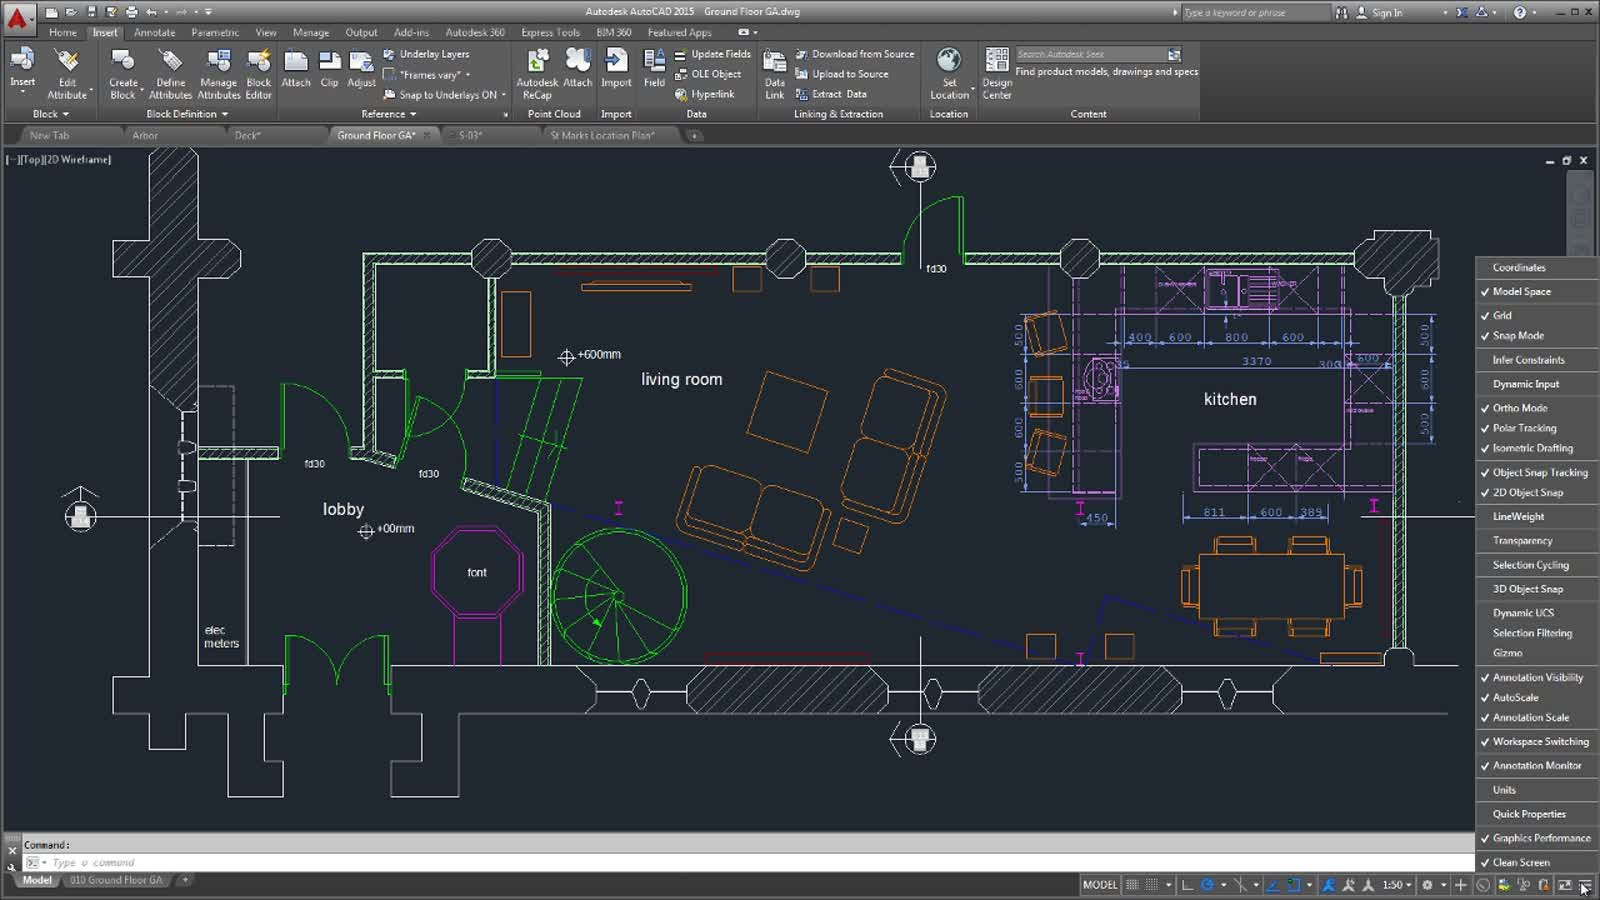 Drawing Smooth Lines In Autocad : New features overview of autocad autodesk